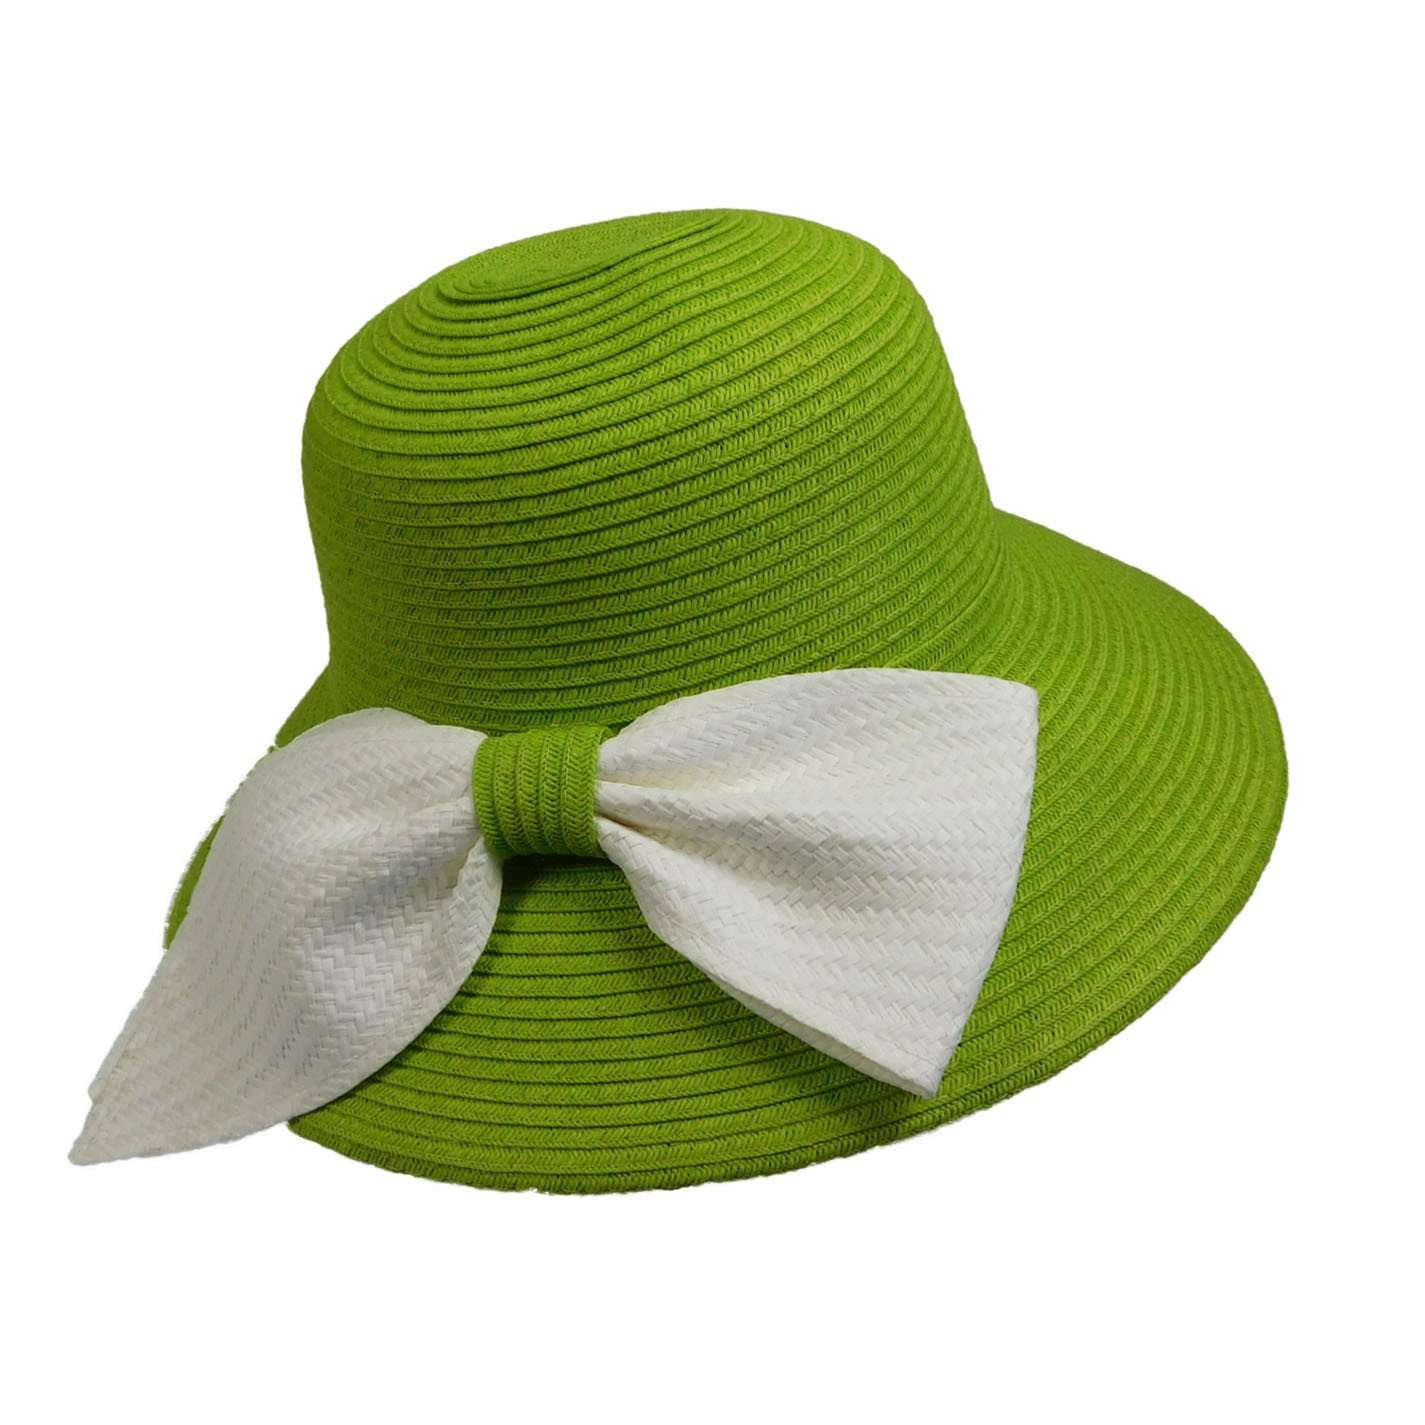 Big Brim Sun Hat with White Bow - SetarTrading Hats 177c0124d293